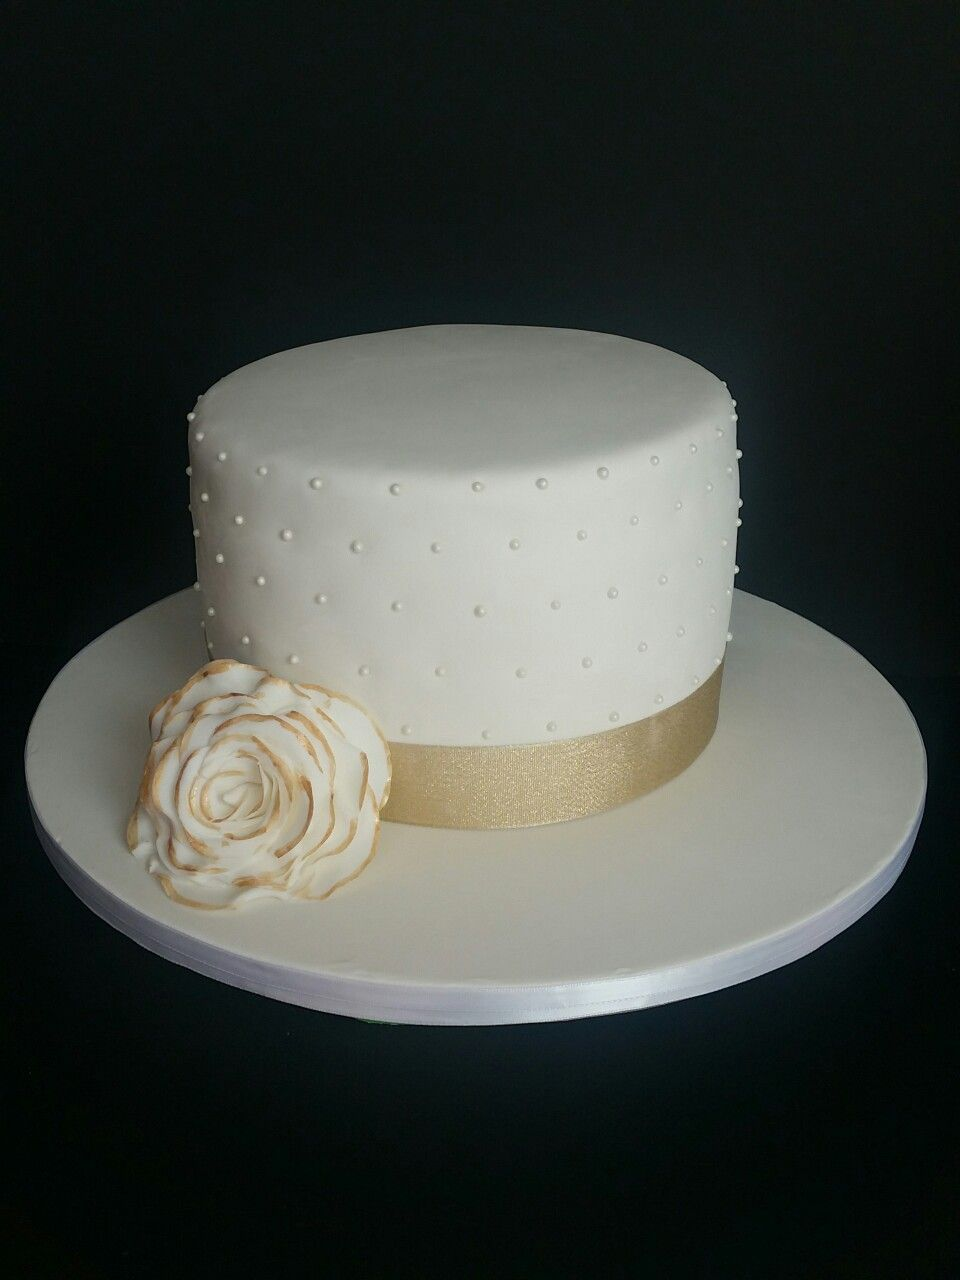 Small gold and white wedding cake